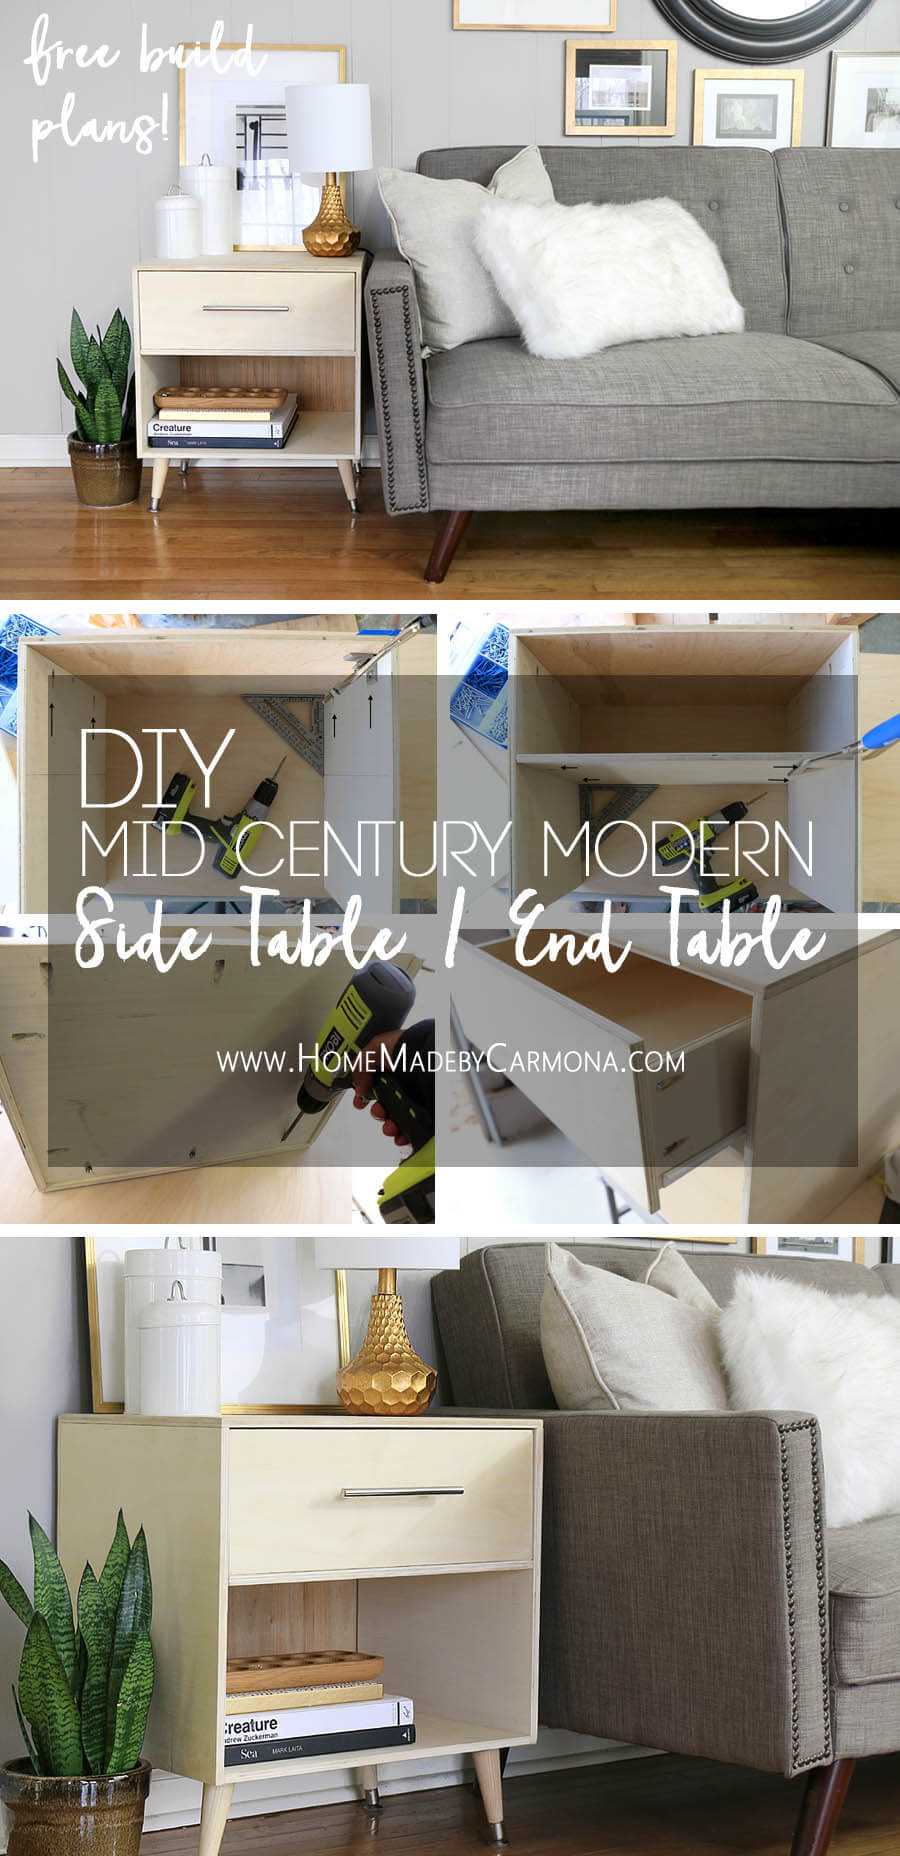 Image of: Free Build Plans Mid Century Modern Side Table Diy End Table Home Made By Carmona